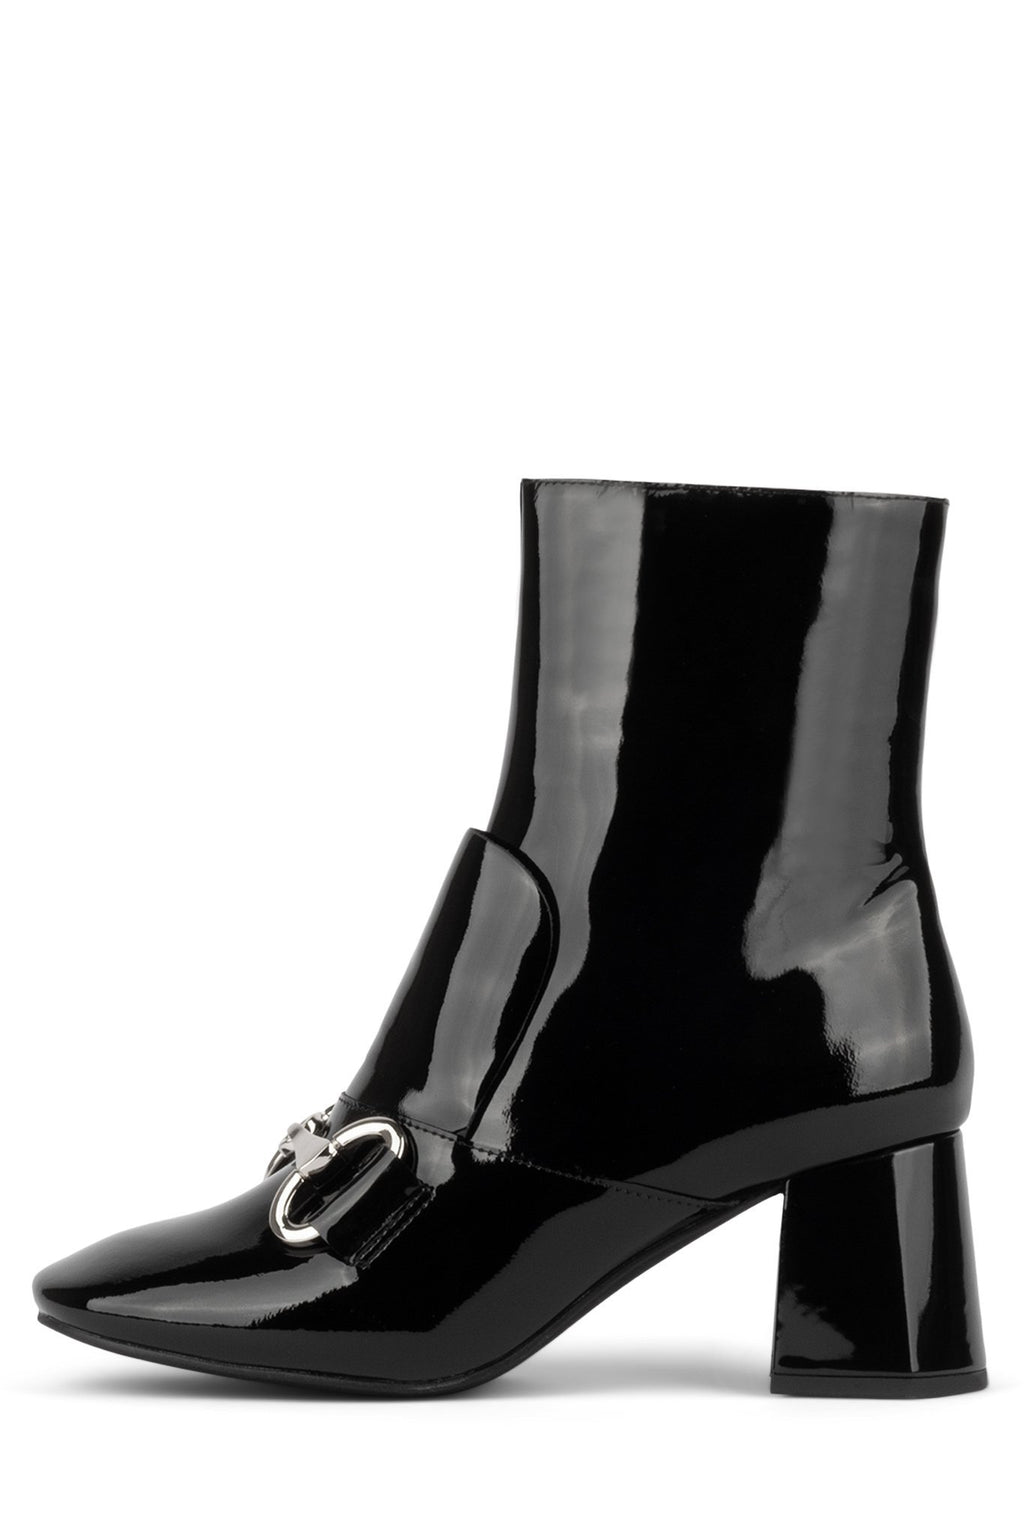 DENEUVE-2L Heeled Bootie Jeffrey Campbell Black Patent 6